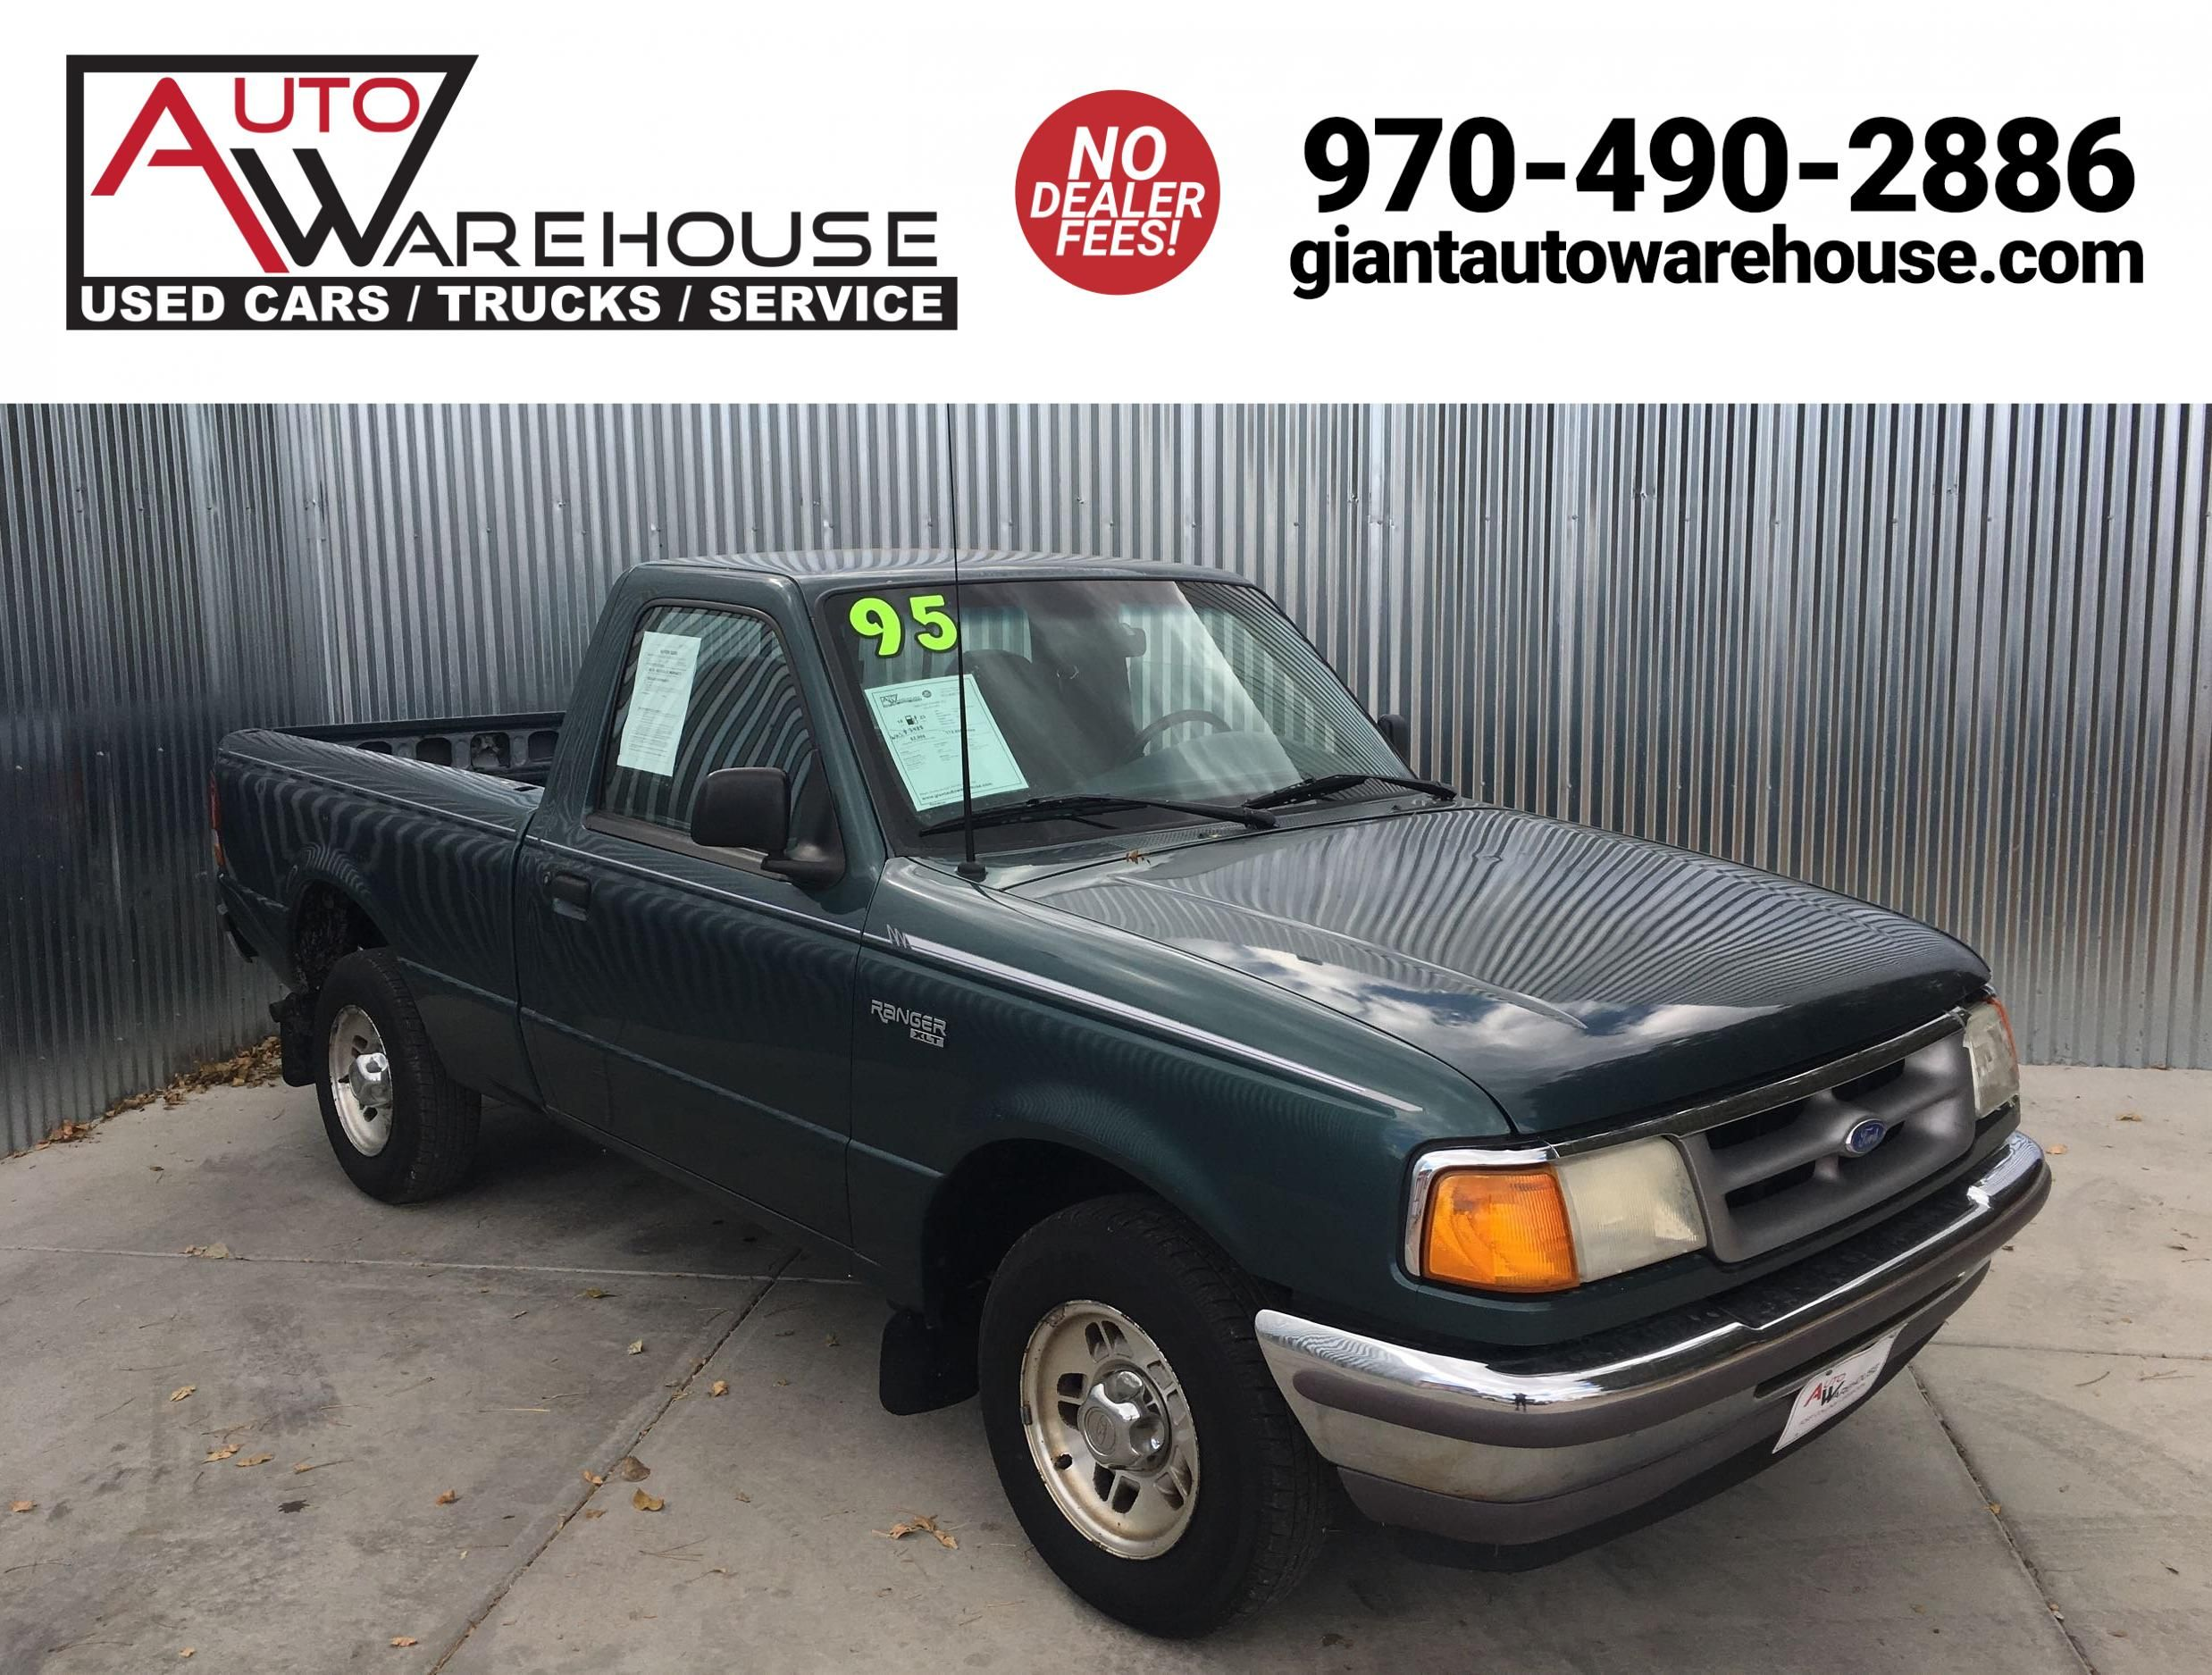 1995 Ford Ranger Transmission Car Maintenance Console Cover 1990 Aod Wiring Xlt Auto Warehouserhgiantautowarehouse At